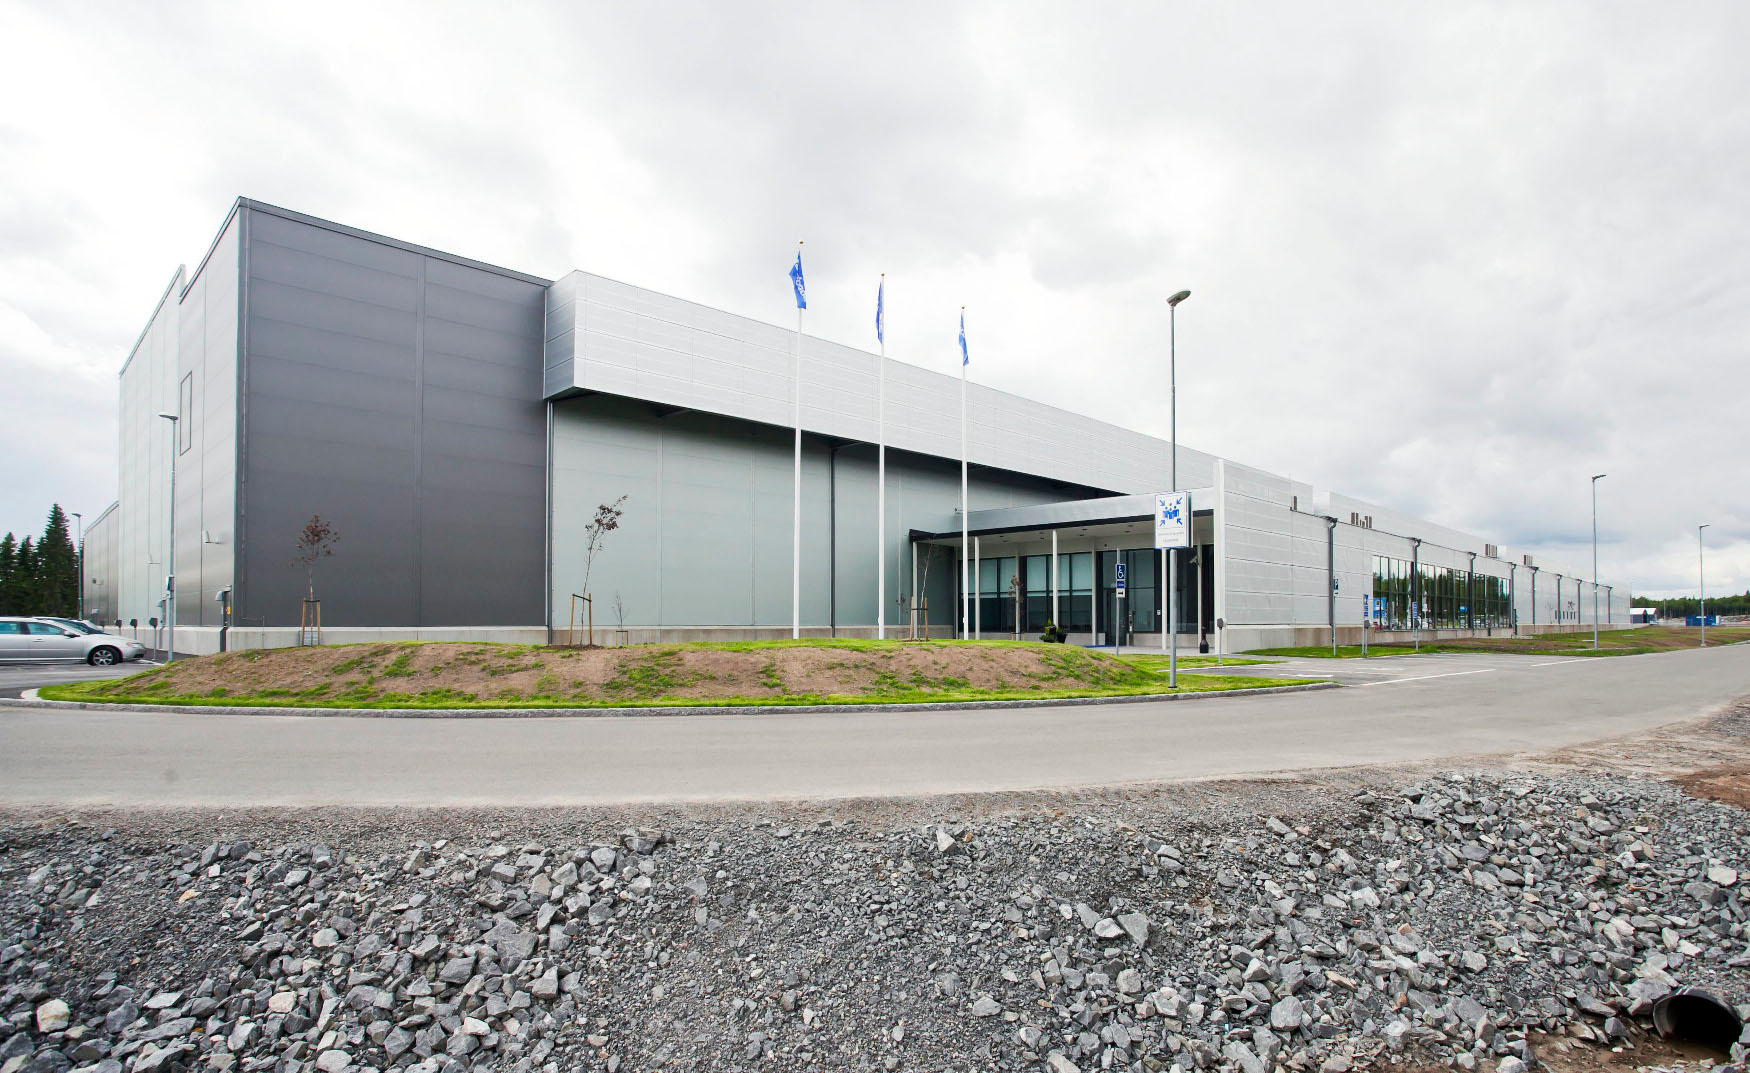 A view of the exteriors of Facebook's new server hall in Lulea, some 900 km (560 miles) north of Stockholm June 12, 2013. Facebook opened its first 300,000 sq foot (28,000 sq metre) data facility outside the U.S. in northern Sweden on Wednesday, according to news reports. REUTERS/Susanne Lindholm/Scanpix Sweden (SWEDEN - Tags: SCIENCE TECHNOLOGY BUSINESS)   ATTENTION EDITORS - THIS IMAGE WAS PROVIDED BY A THIRD PARTY. SWEDEN OUT. NO COMMERCIAL OR EDITORIAL SALES IN SWEDEN. NO COMMERCIAL SALES. THIS PICTURE IS DISTRIBUTED EXACTLY AS RECEIVED BY REUTERS, AS A SERVICE TO CLIENTS - GM1E96D05XK01